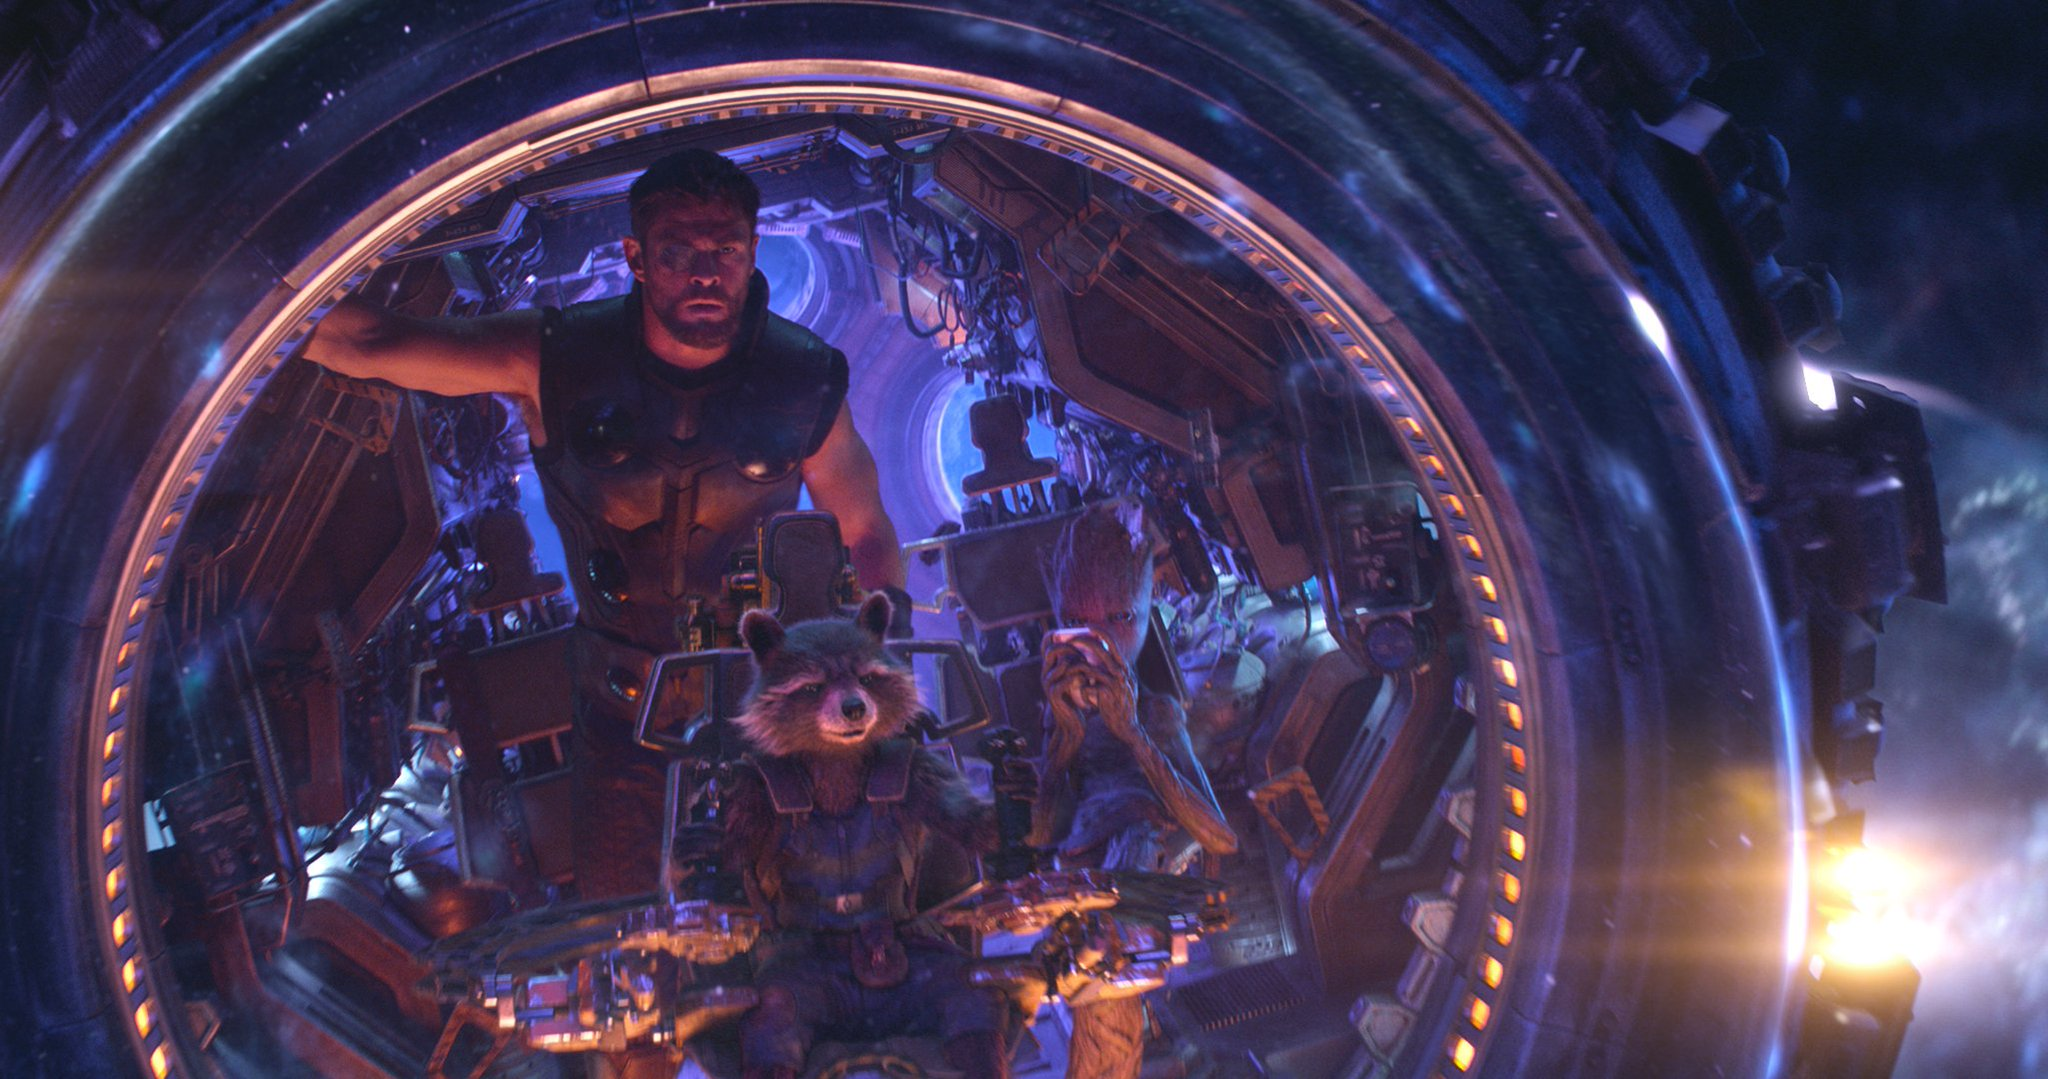 Check out these new images from #Avengers: #InfinityWar. Destiny arrives April 27th. (3/3) https://t.co/G1z1h8twlj